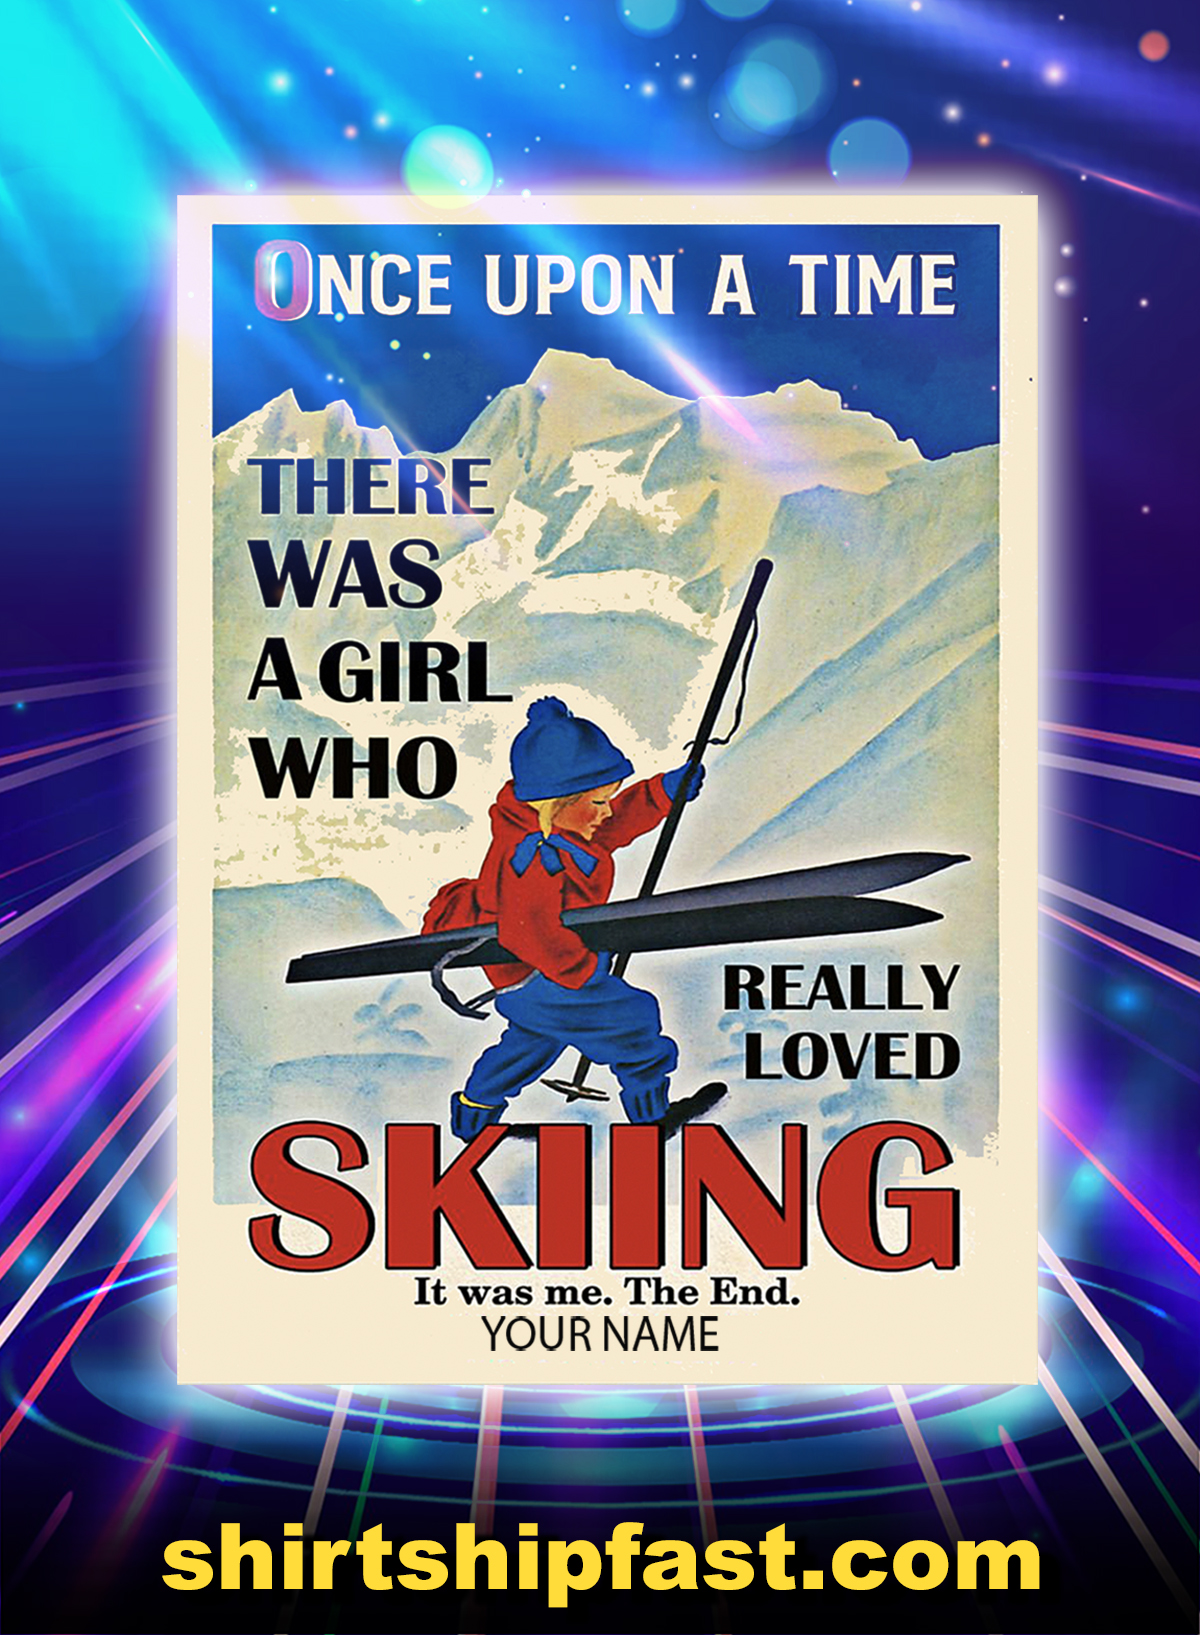 Personalized custom name Once upon a time there was a girl who really loved skiing poster and canvas prints - A1